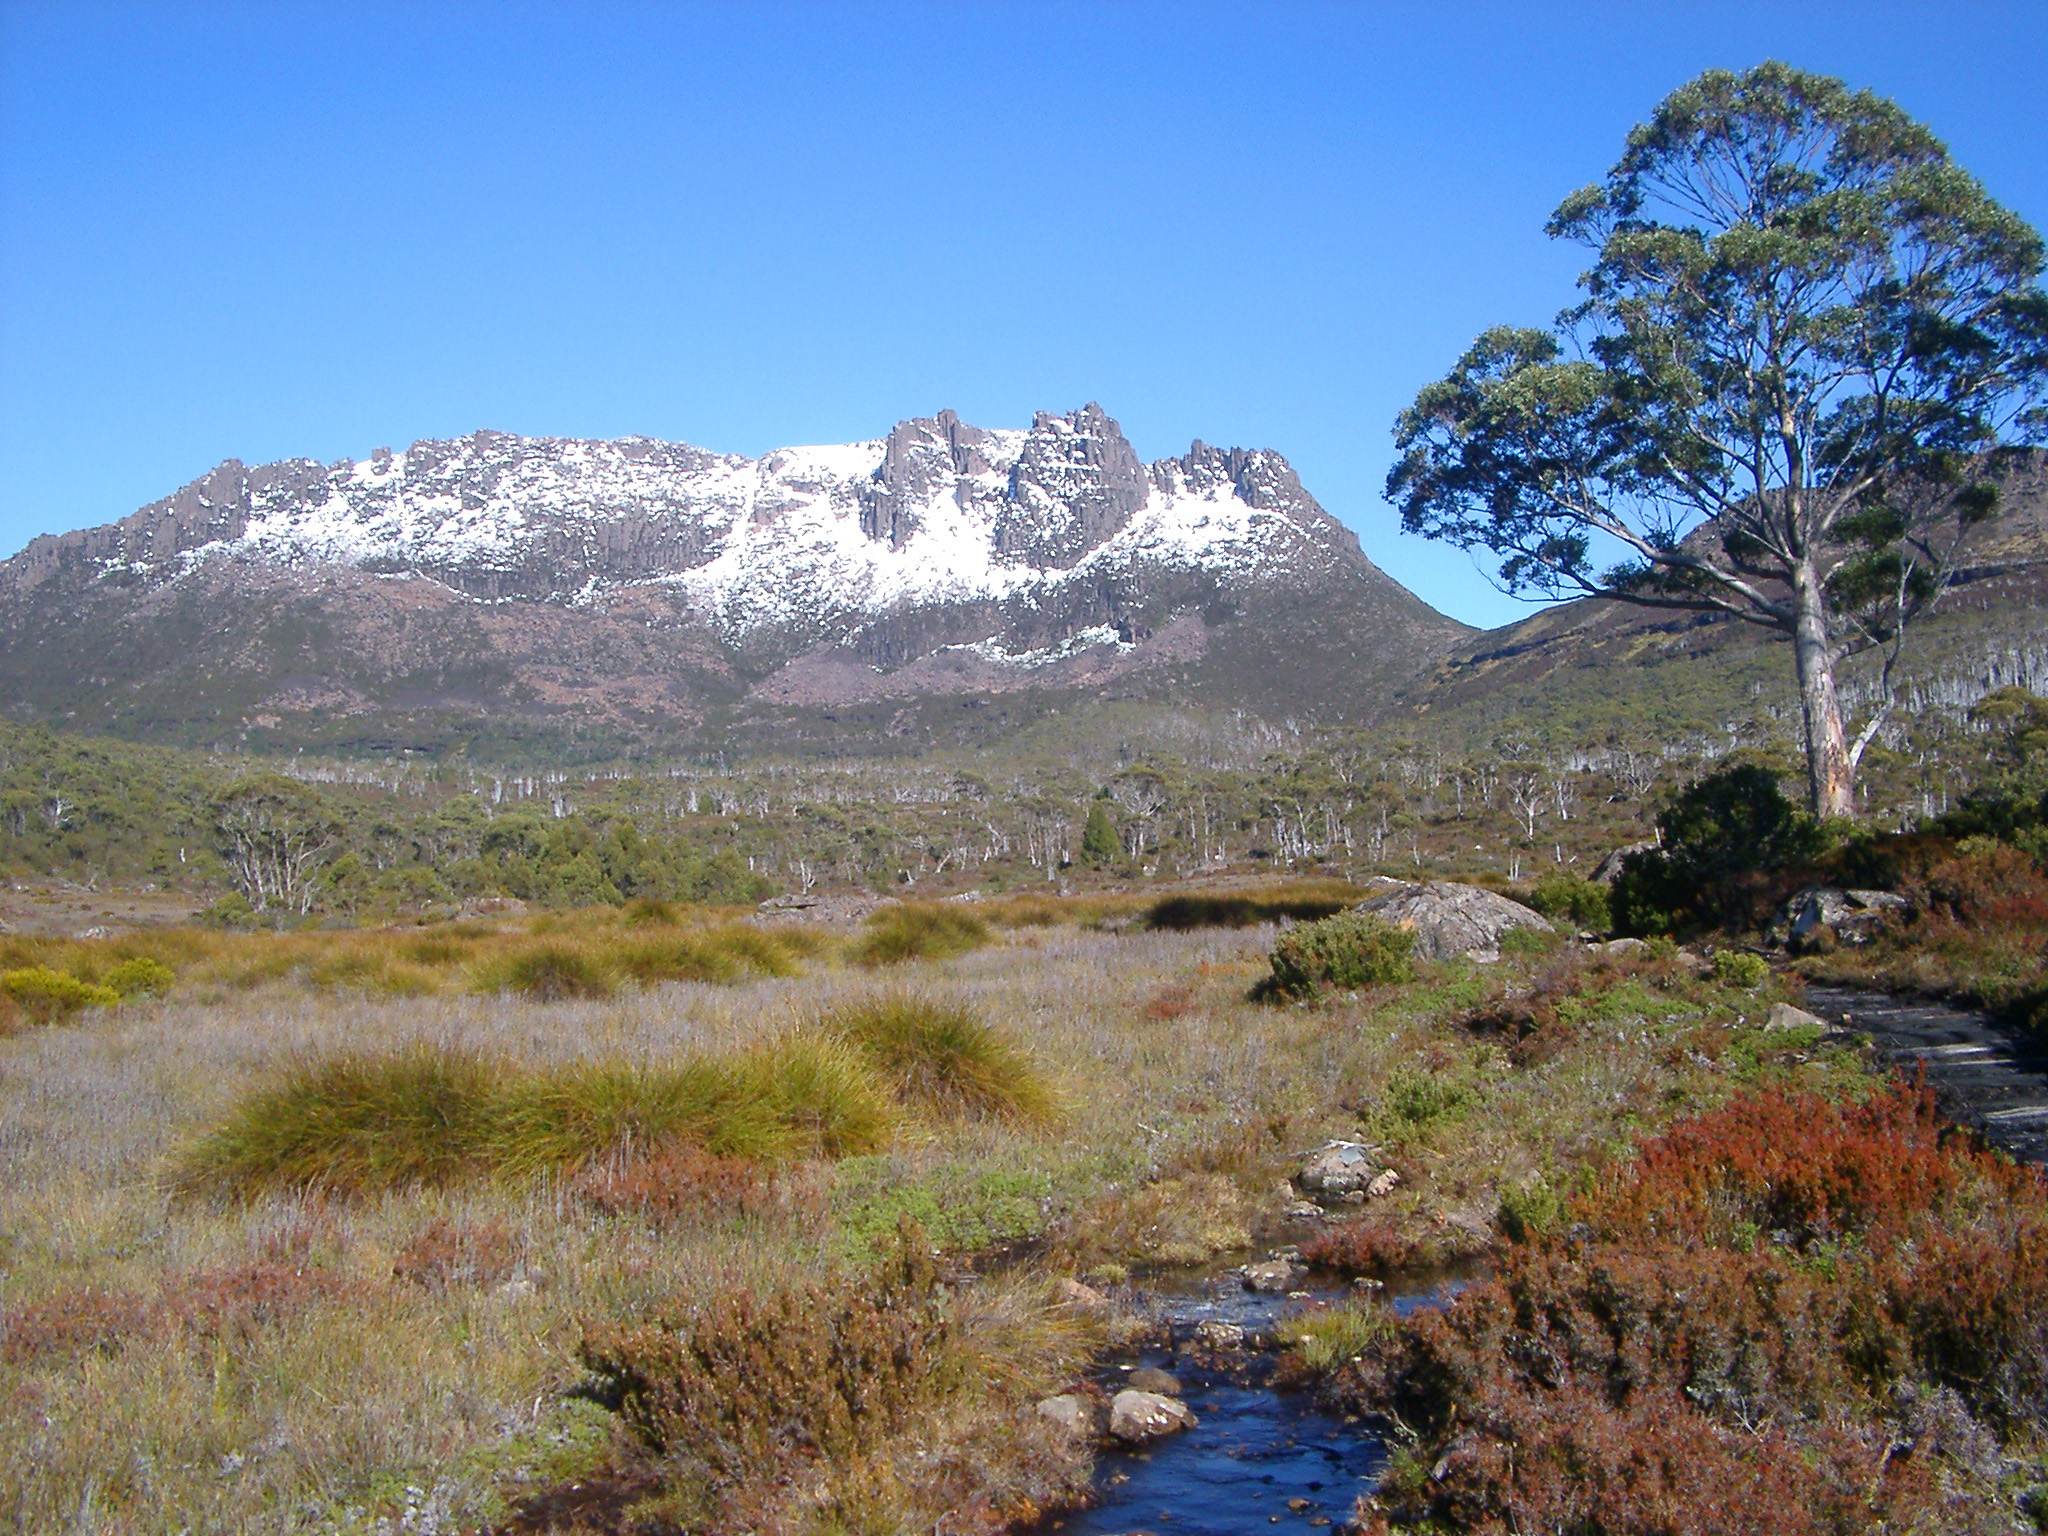 View Looking Towards Snow Capped Mount Ossa, Cradle Mountain-Lake St Clair National Park, Tasmania